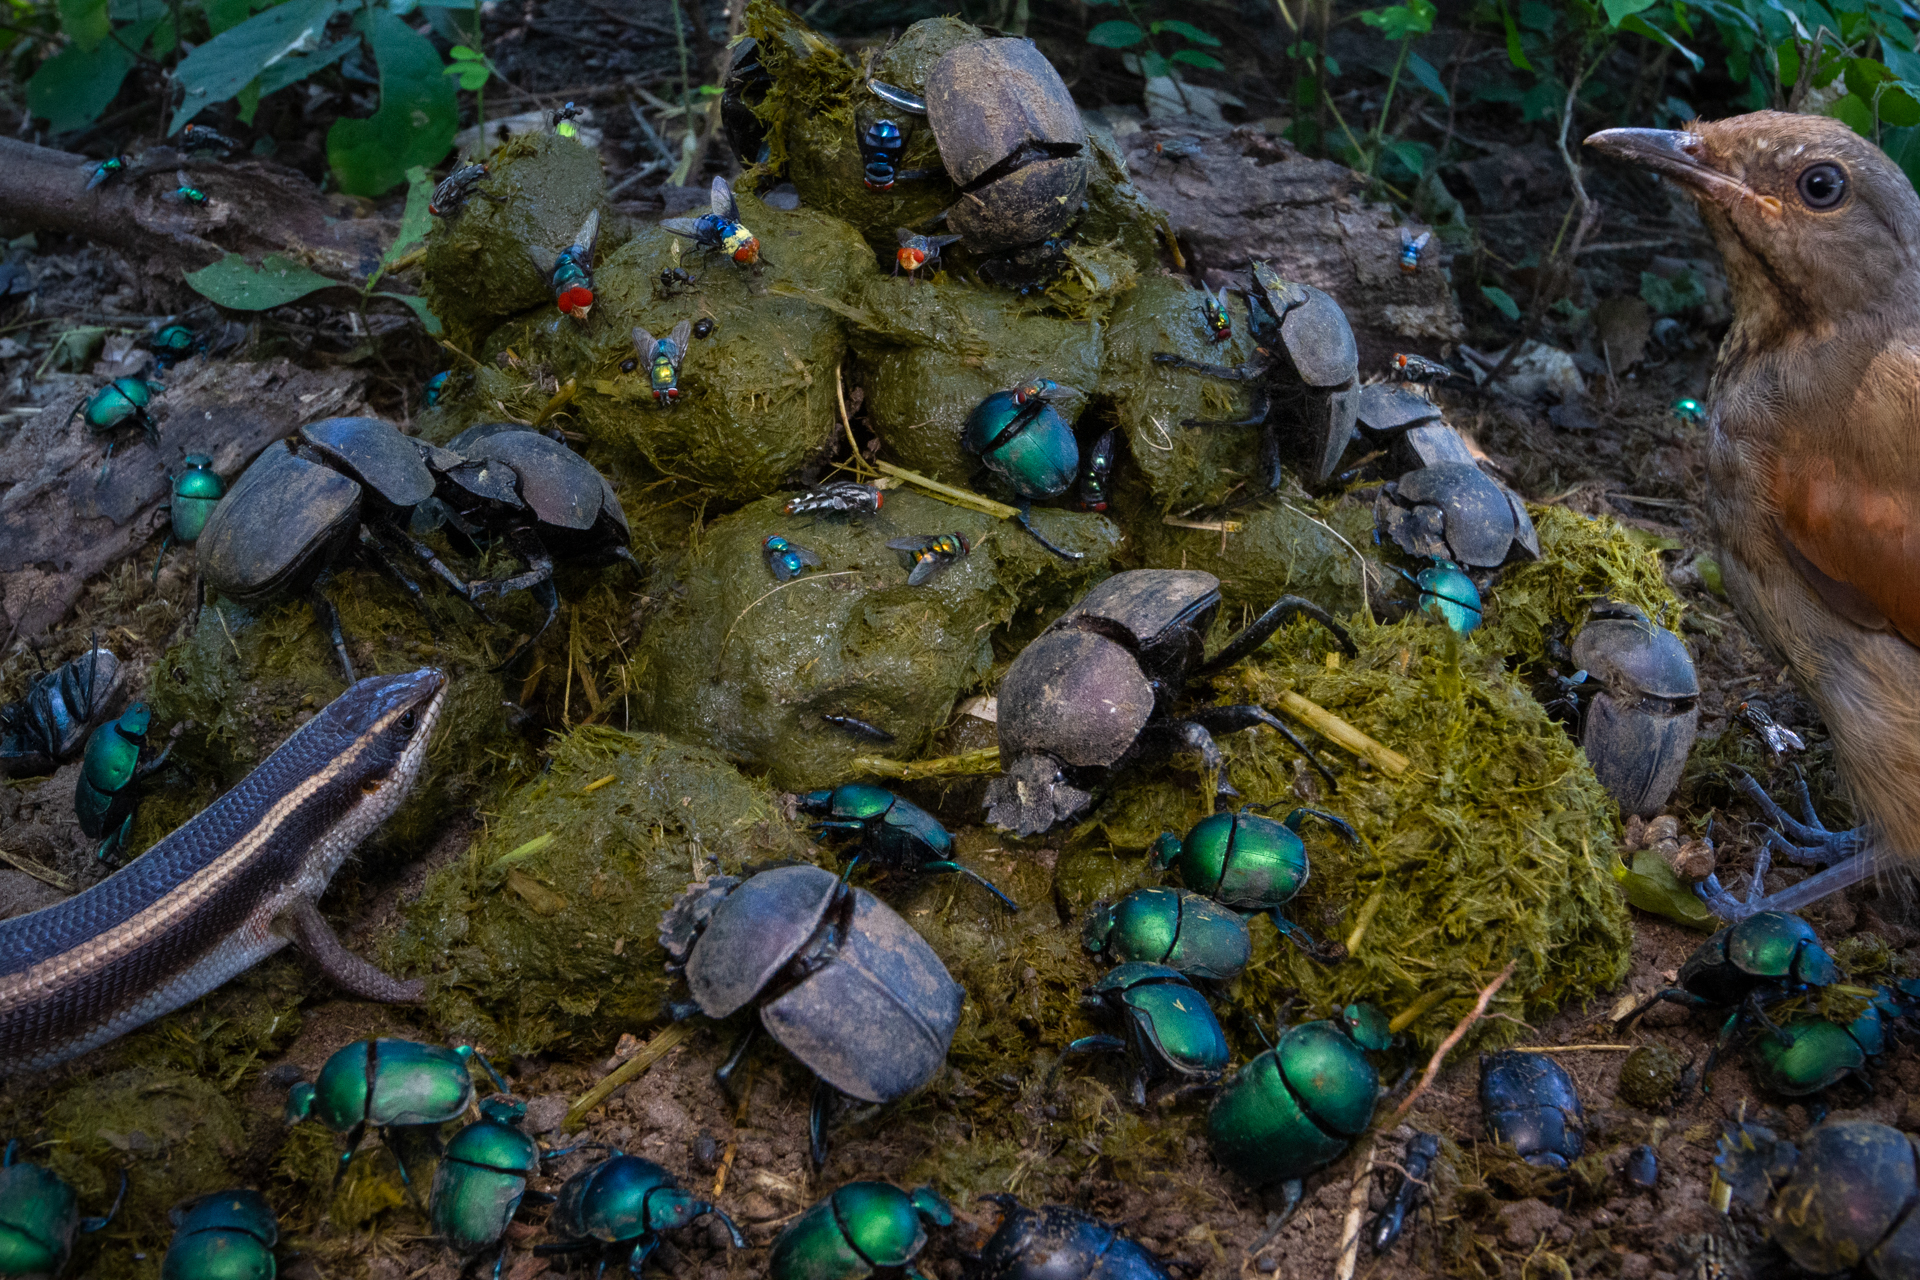 Dung beetles captured by Jen Guyton